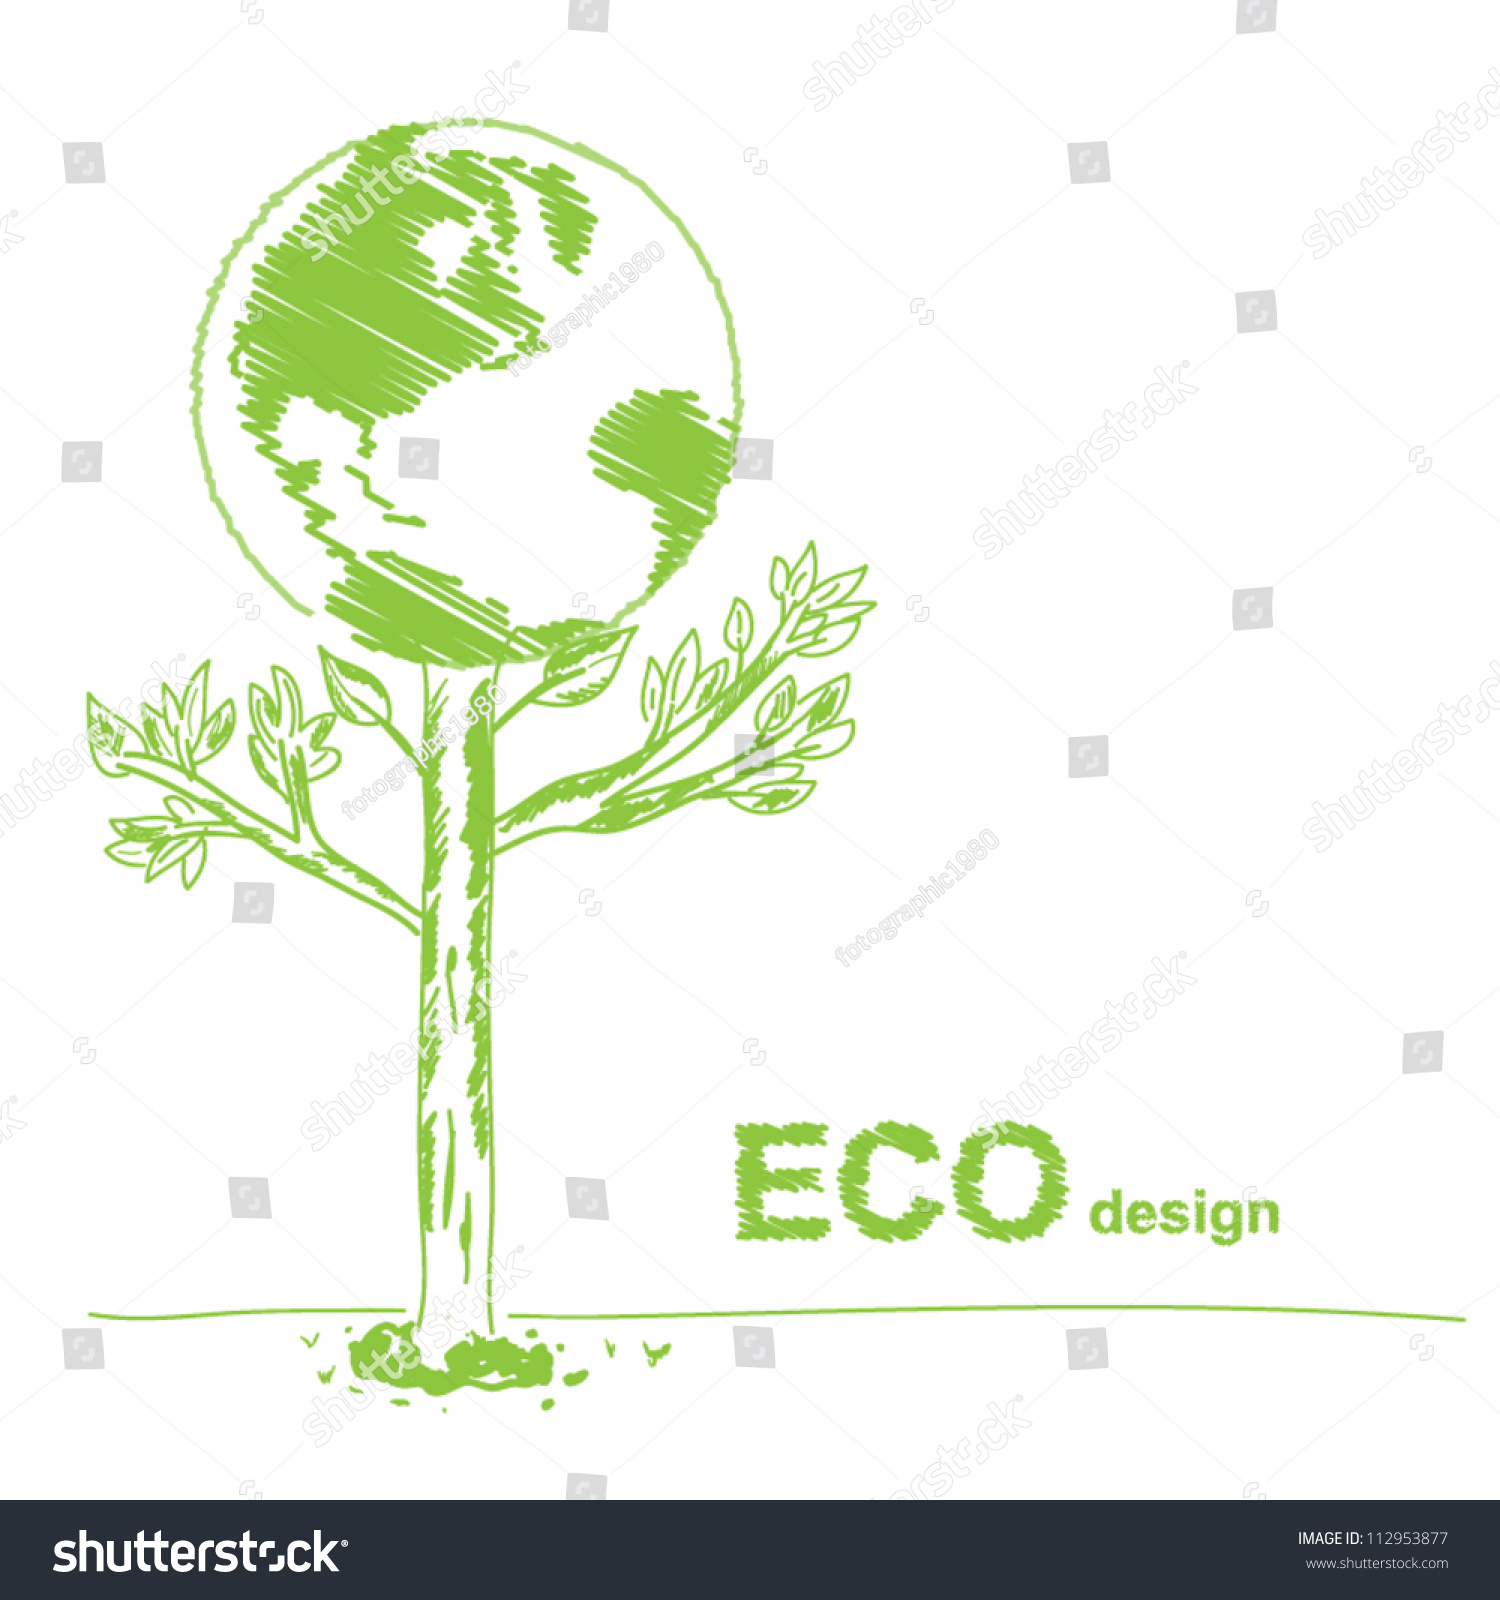 vector handwriting globe sketch eco design stock vector 112953877 shutterstock. Black Bedroom Furniture Sets. Home Design Ideas